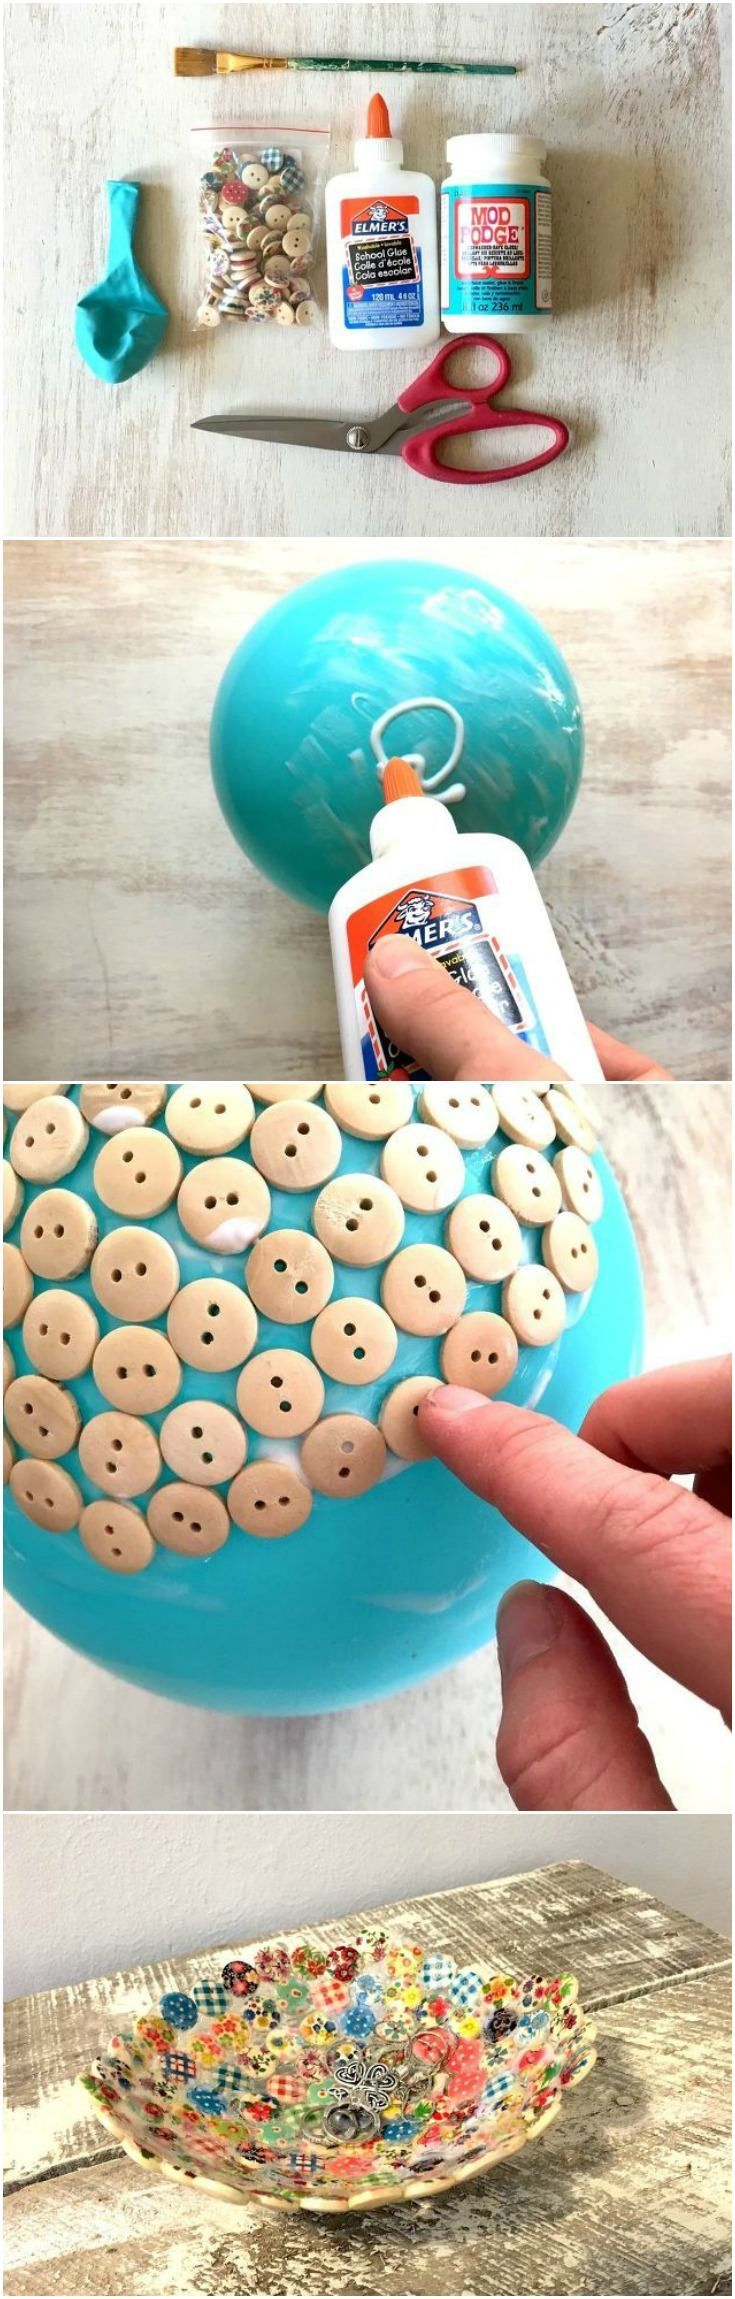 Button dish: if you're looking for a fun project to do with your littles, or just for yourself, this is one to add to your list. It's a little time consuming because of drying time, but it's super inexpensive (possibly FREE for some who may have all the supplies on hand), really easy to make, and the result is so cute!